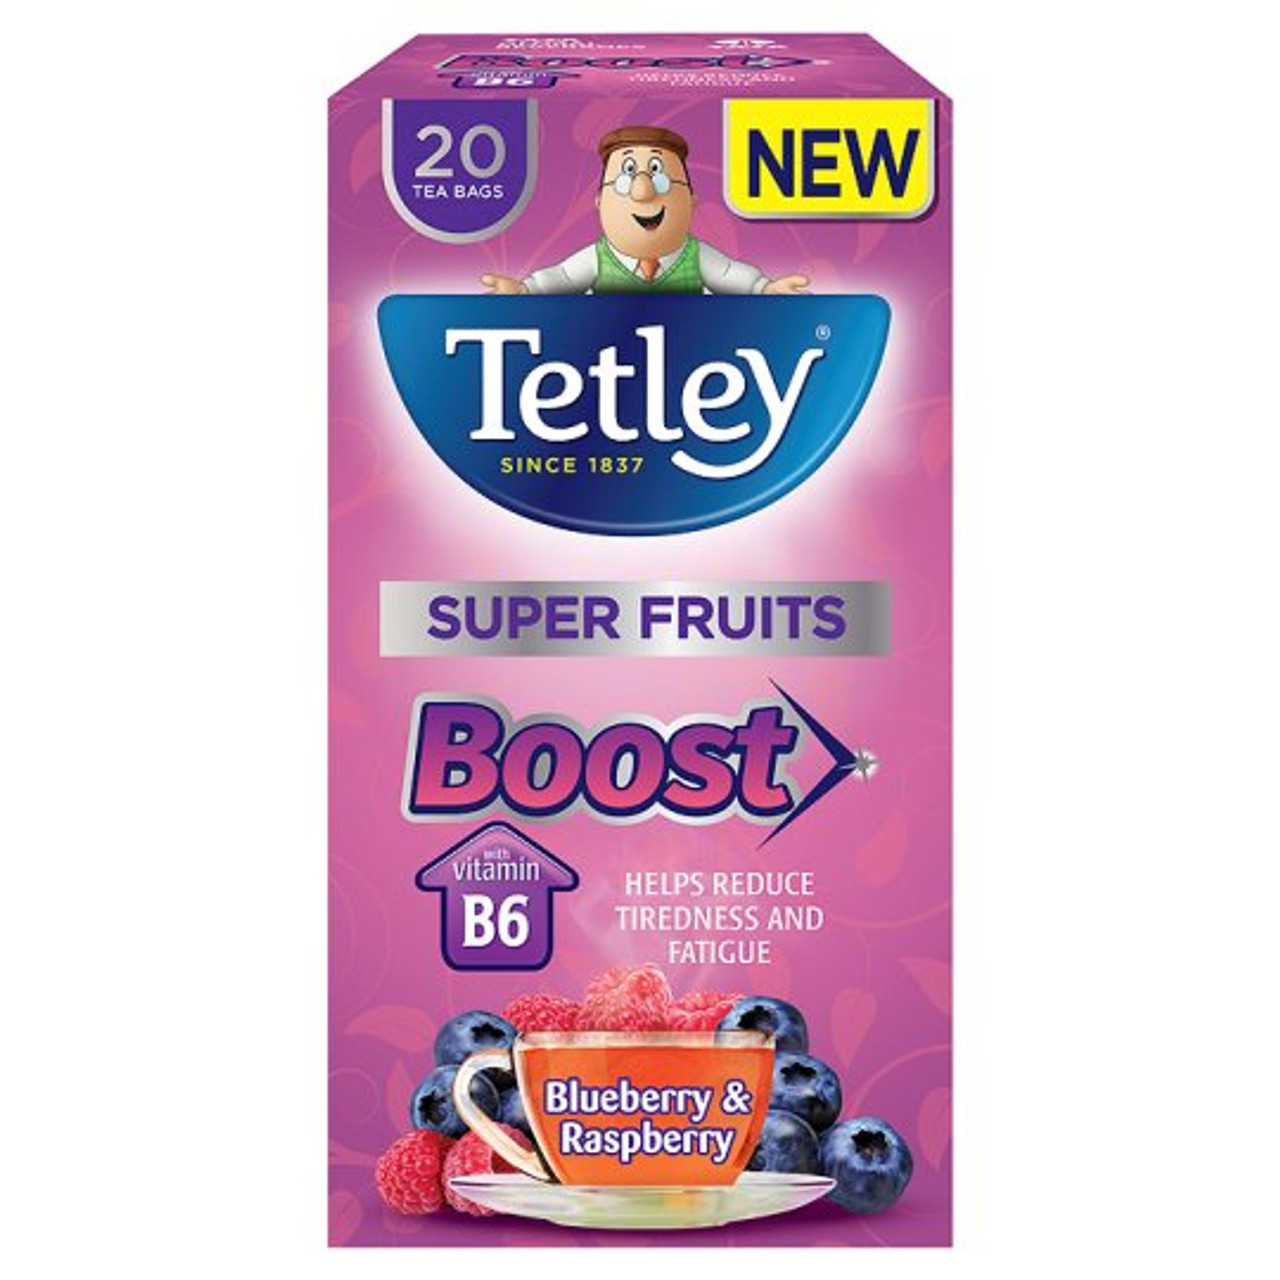 Tetley Boost Super Fruits Cranberry Elderflower Tea 20 Pare S Mysupermarket